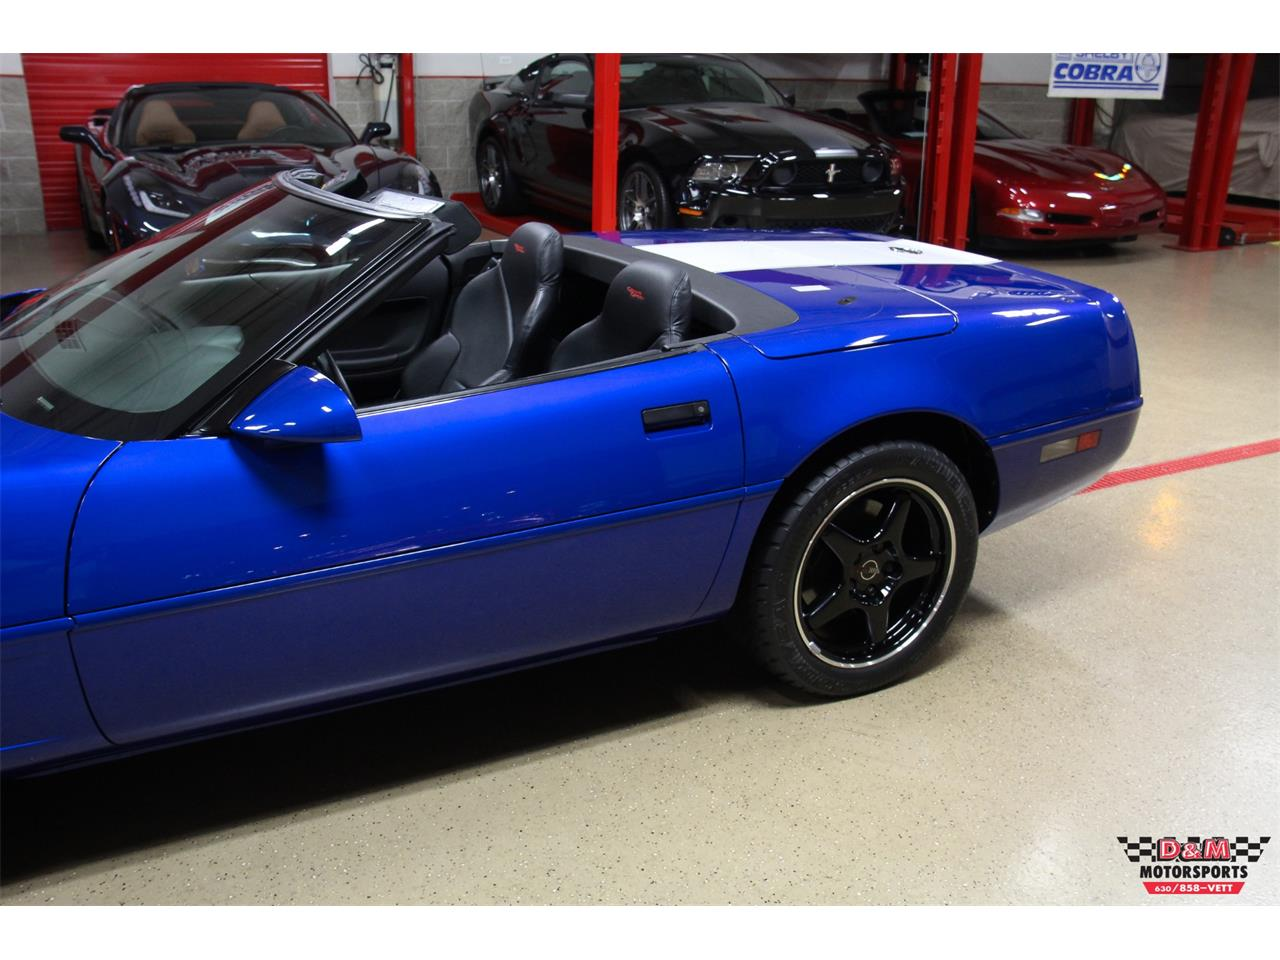 Large Picture of '96 Corvette located in Illinois Offered by D & M Motorsports - LV9Z